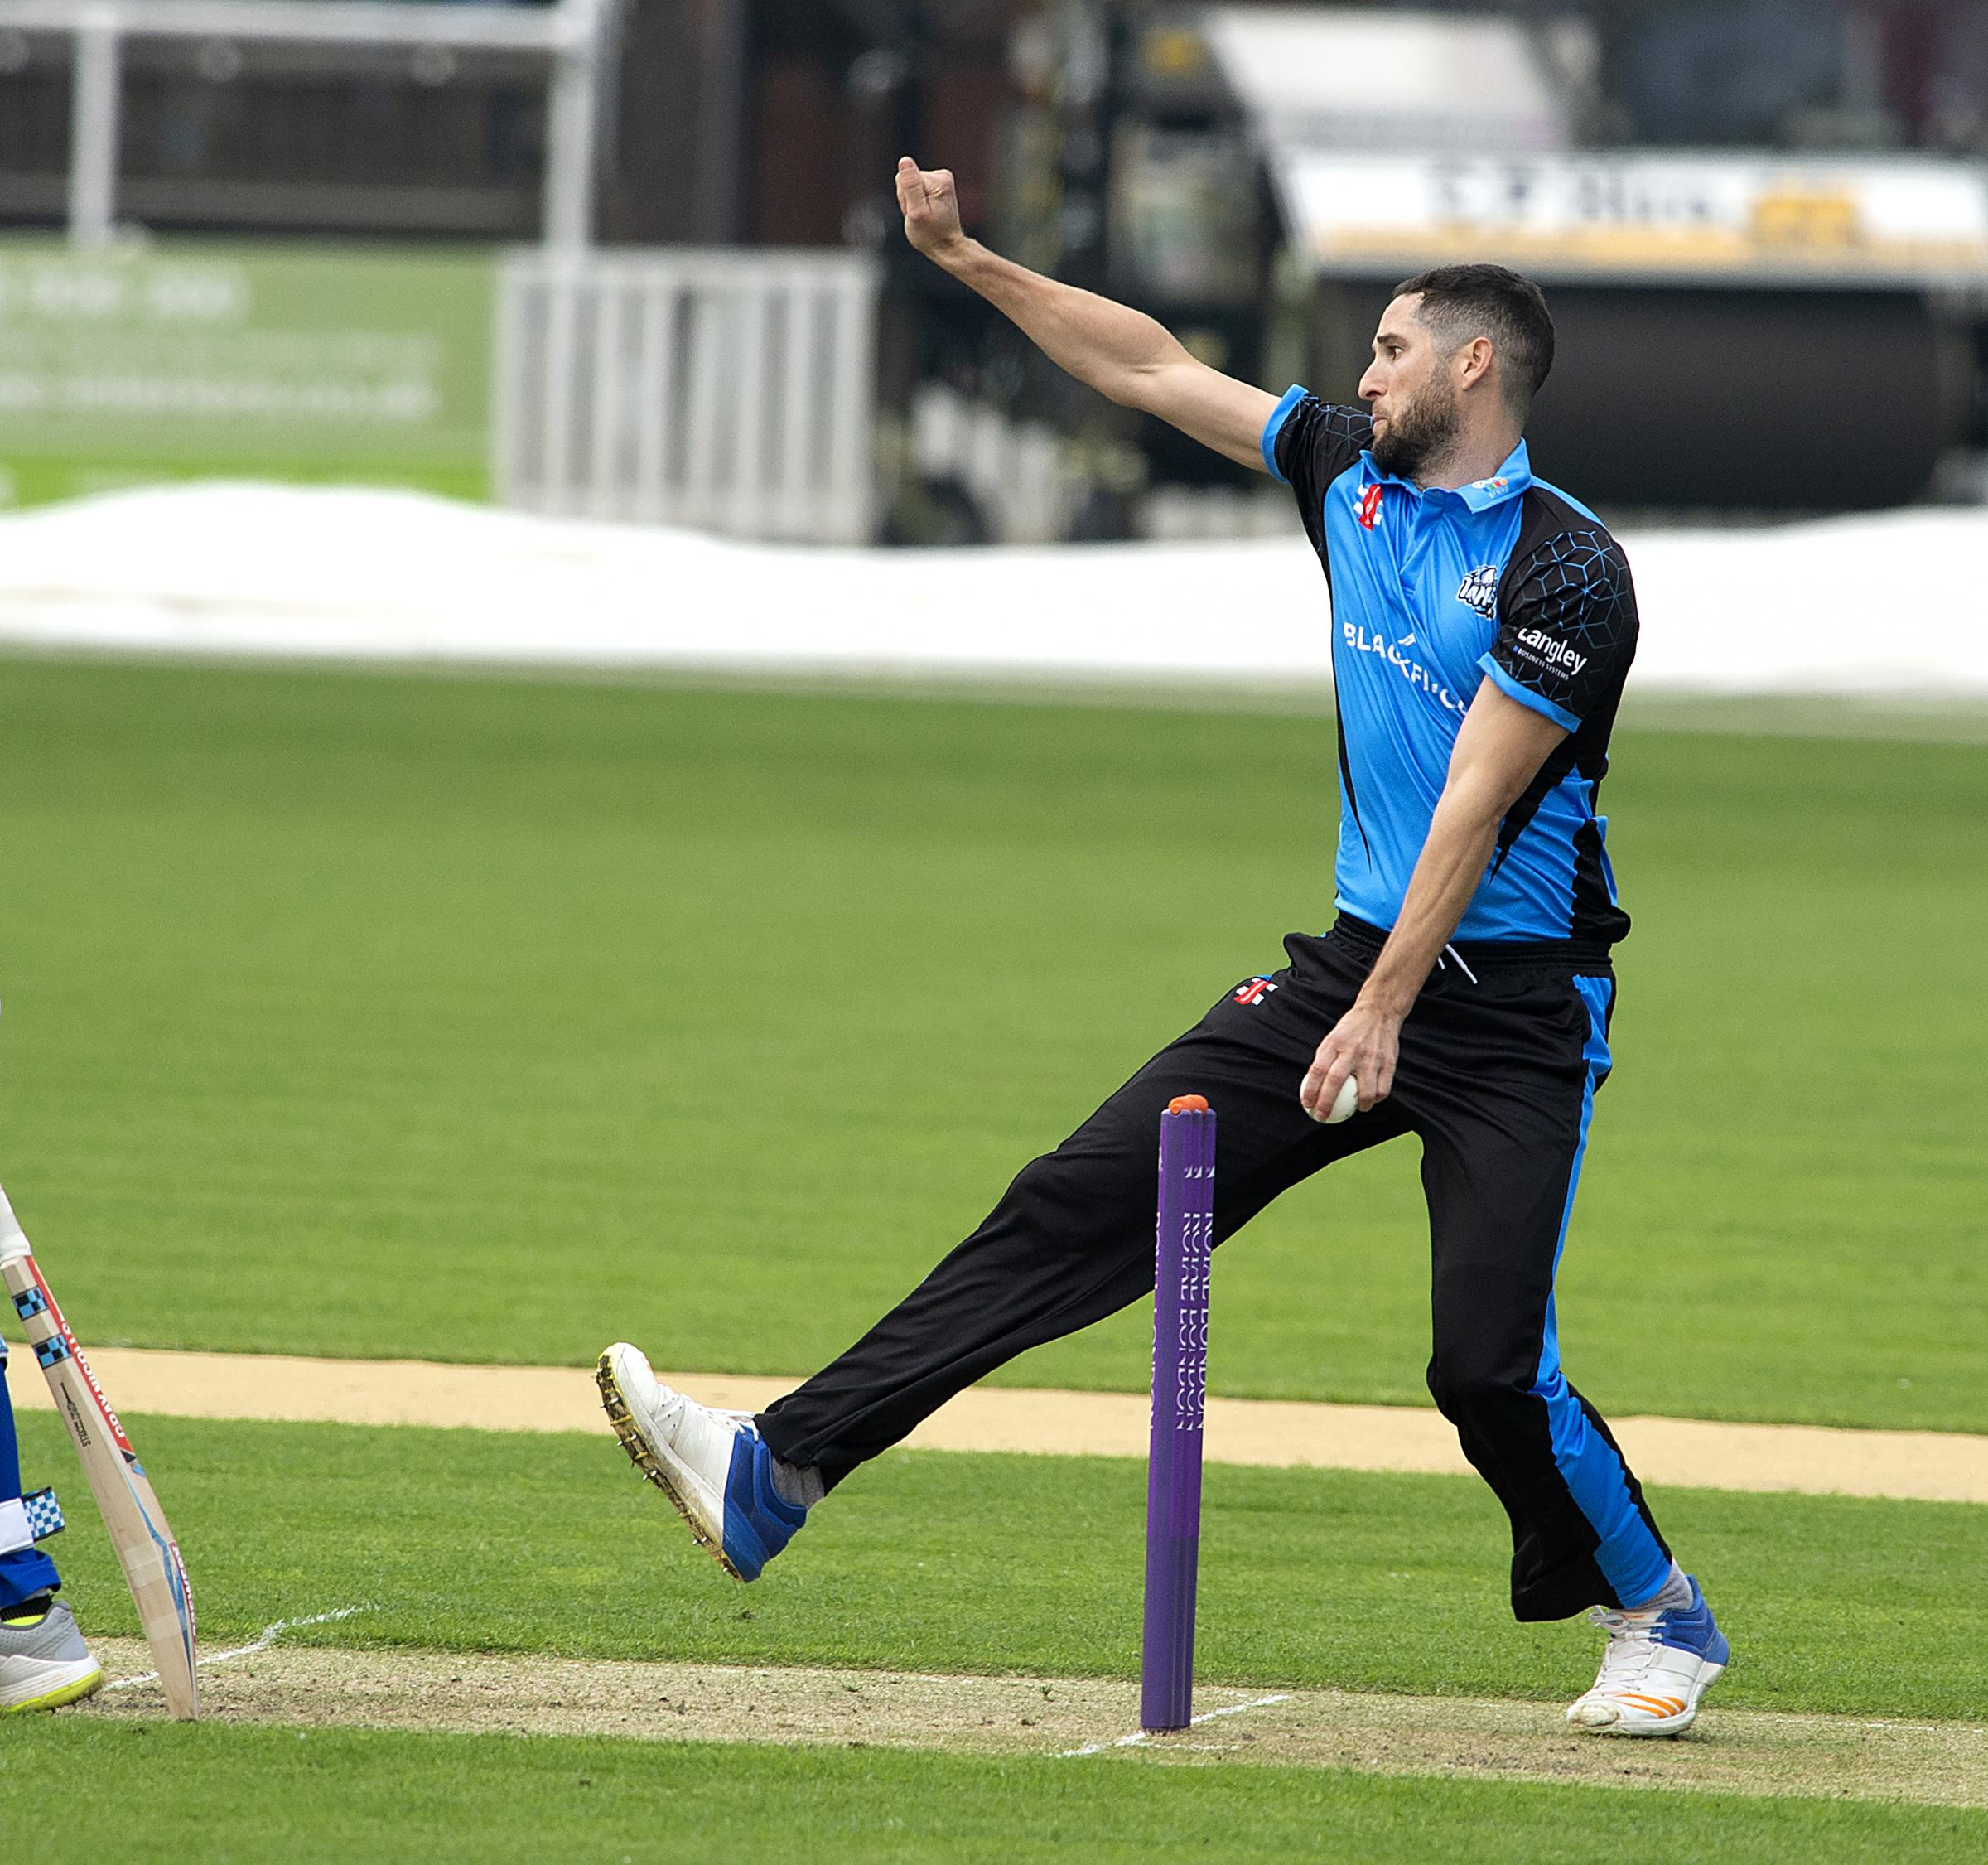 Worcestershire Rapids' Wayne Parnell. Picture: PAUL FRANCE/WRITE ANGLE MEDIA